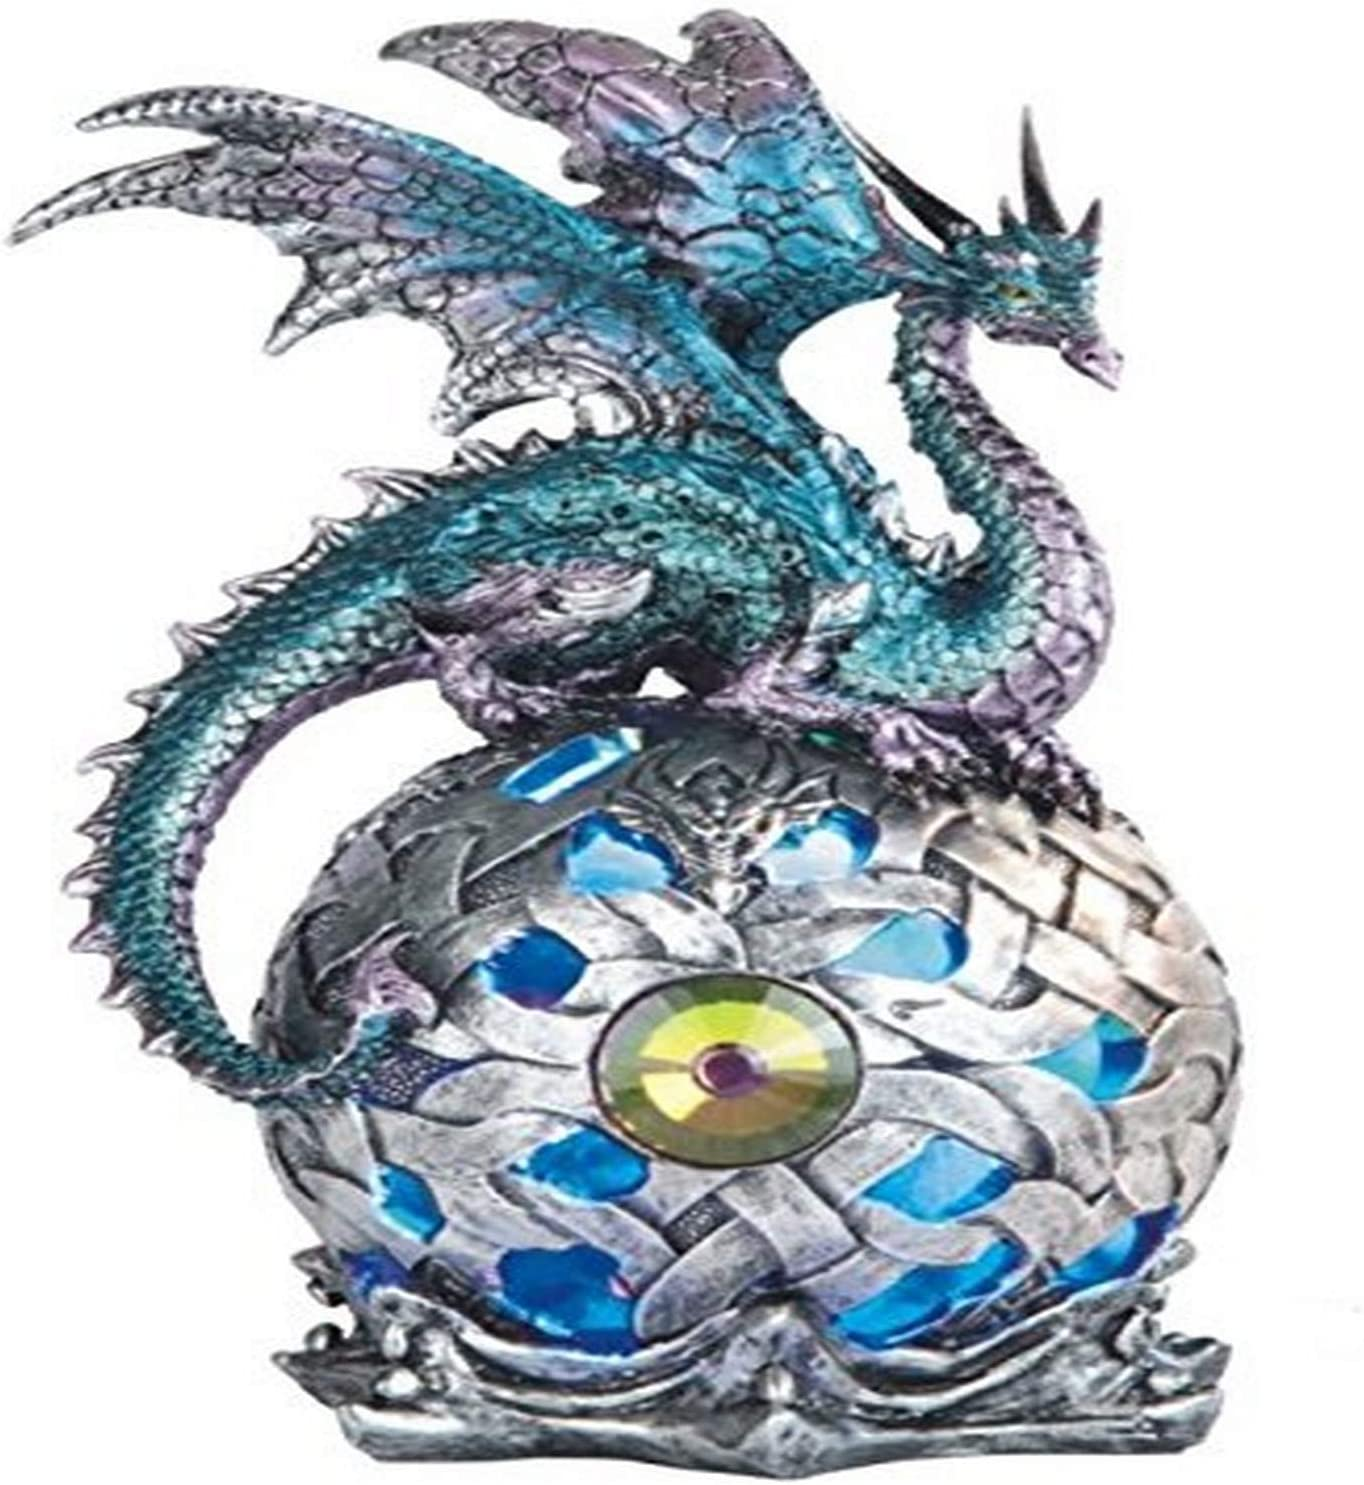 George S. Chen Imports StealStreet SS-G-71512 Dragon on Light Up LED Orb Statue Display, 8.25